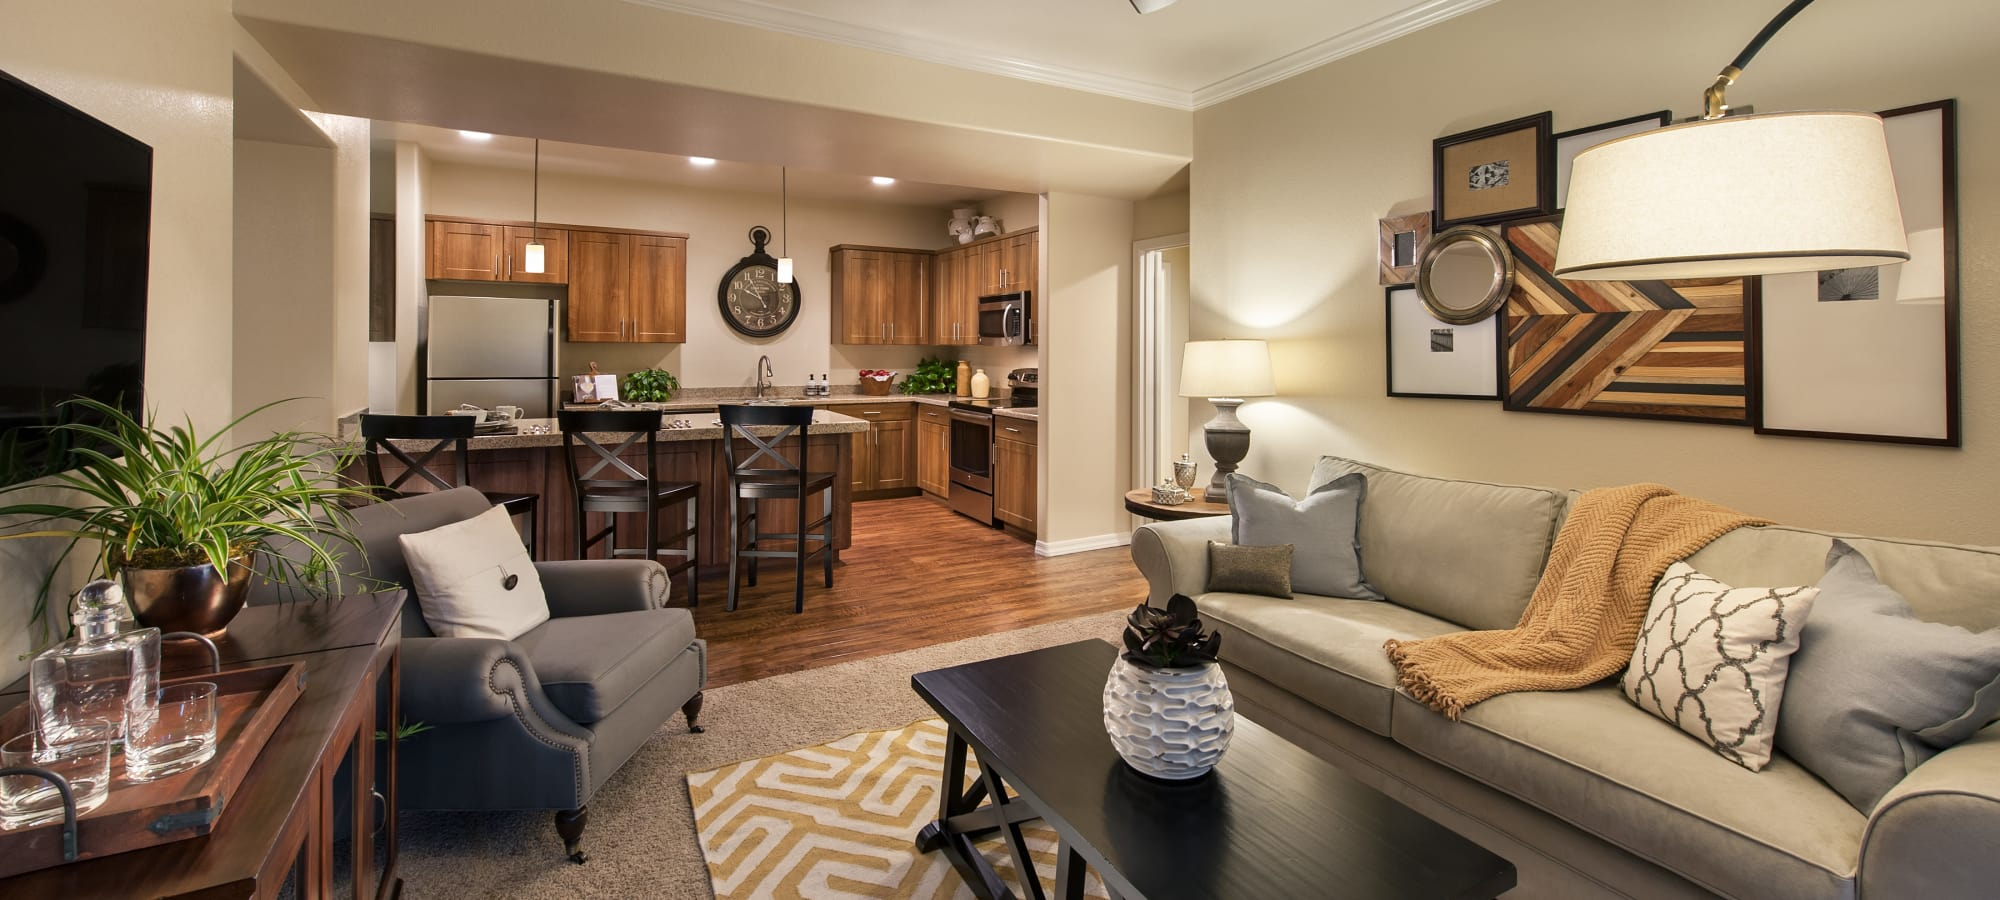 Modern decor in living area of model home at San Paseo in Phoenix, Arizona